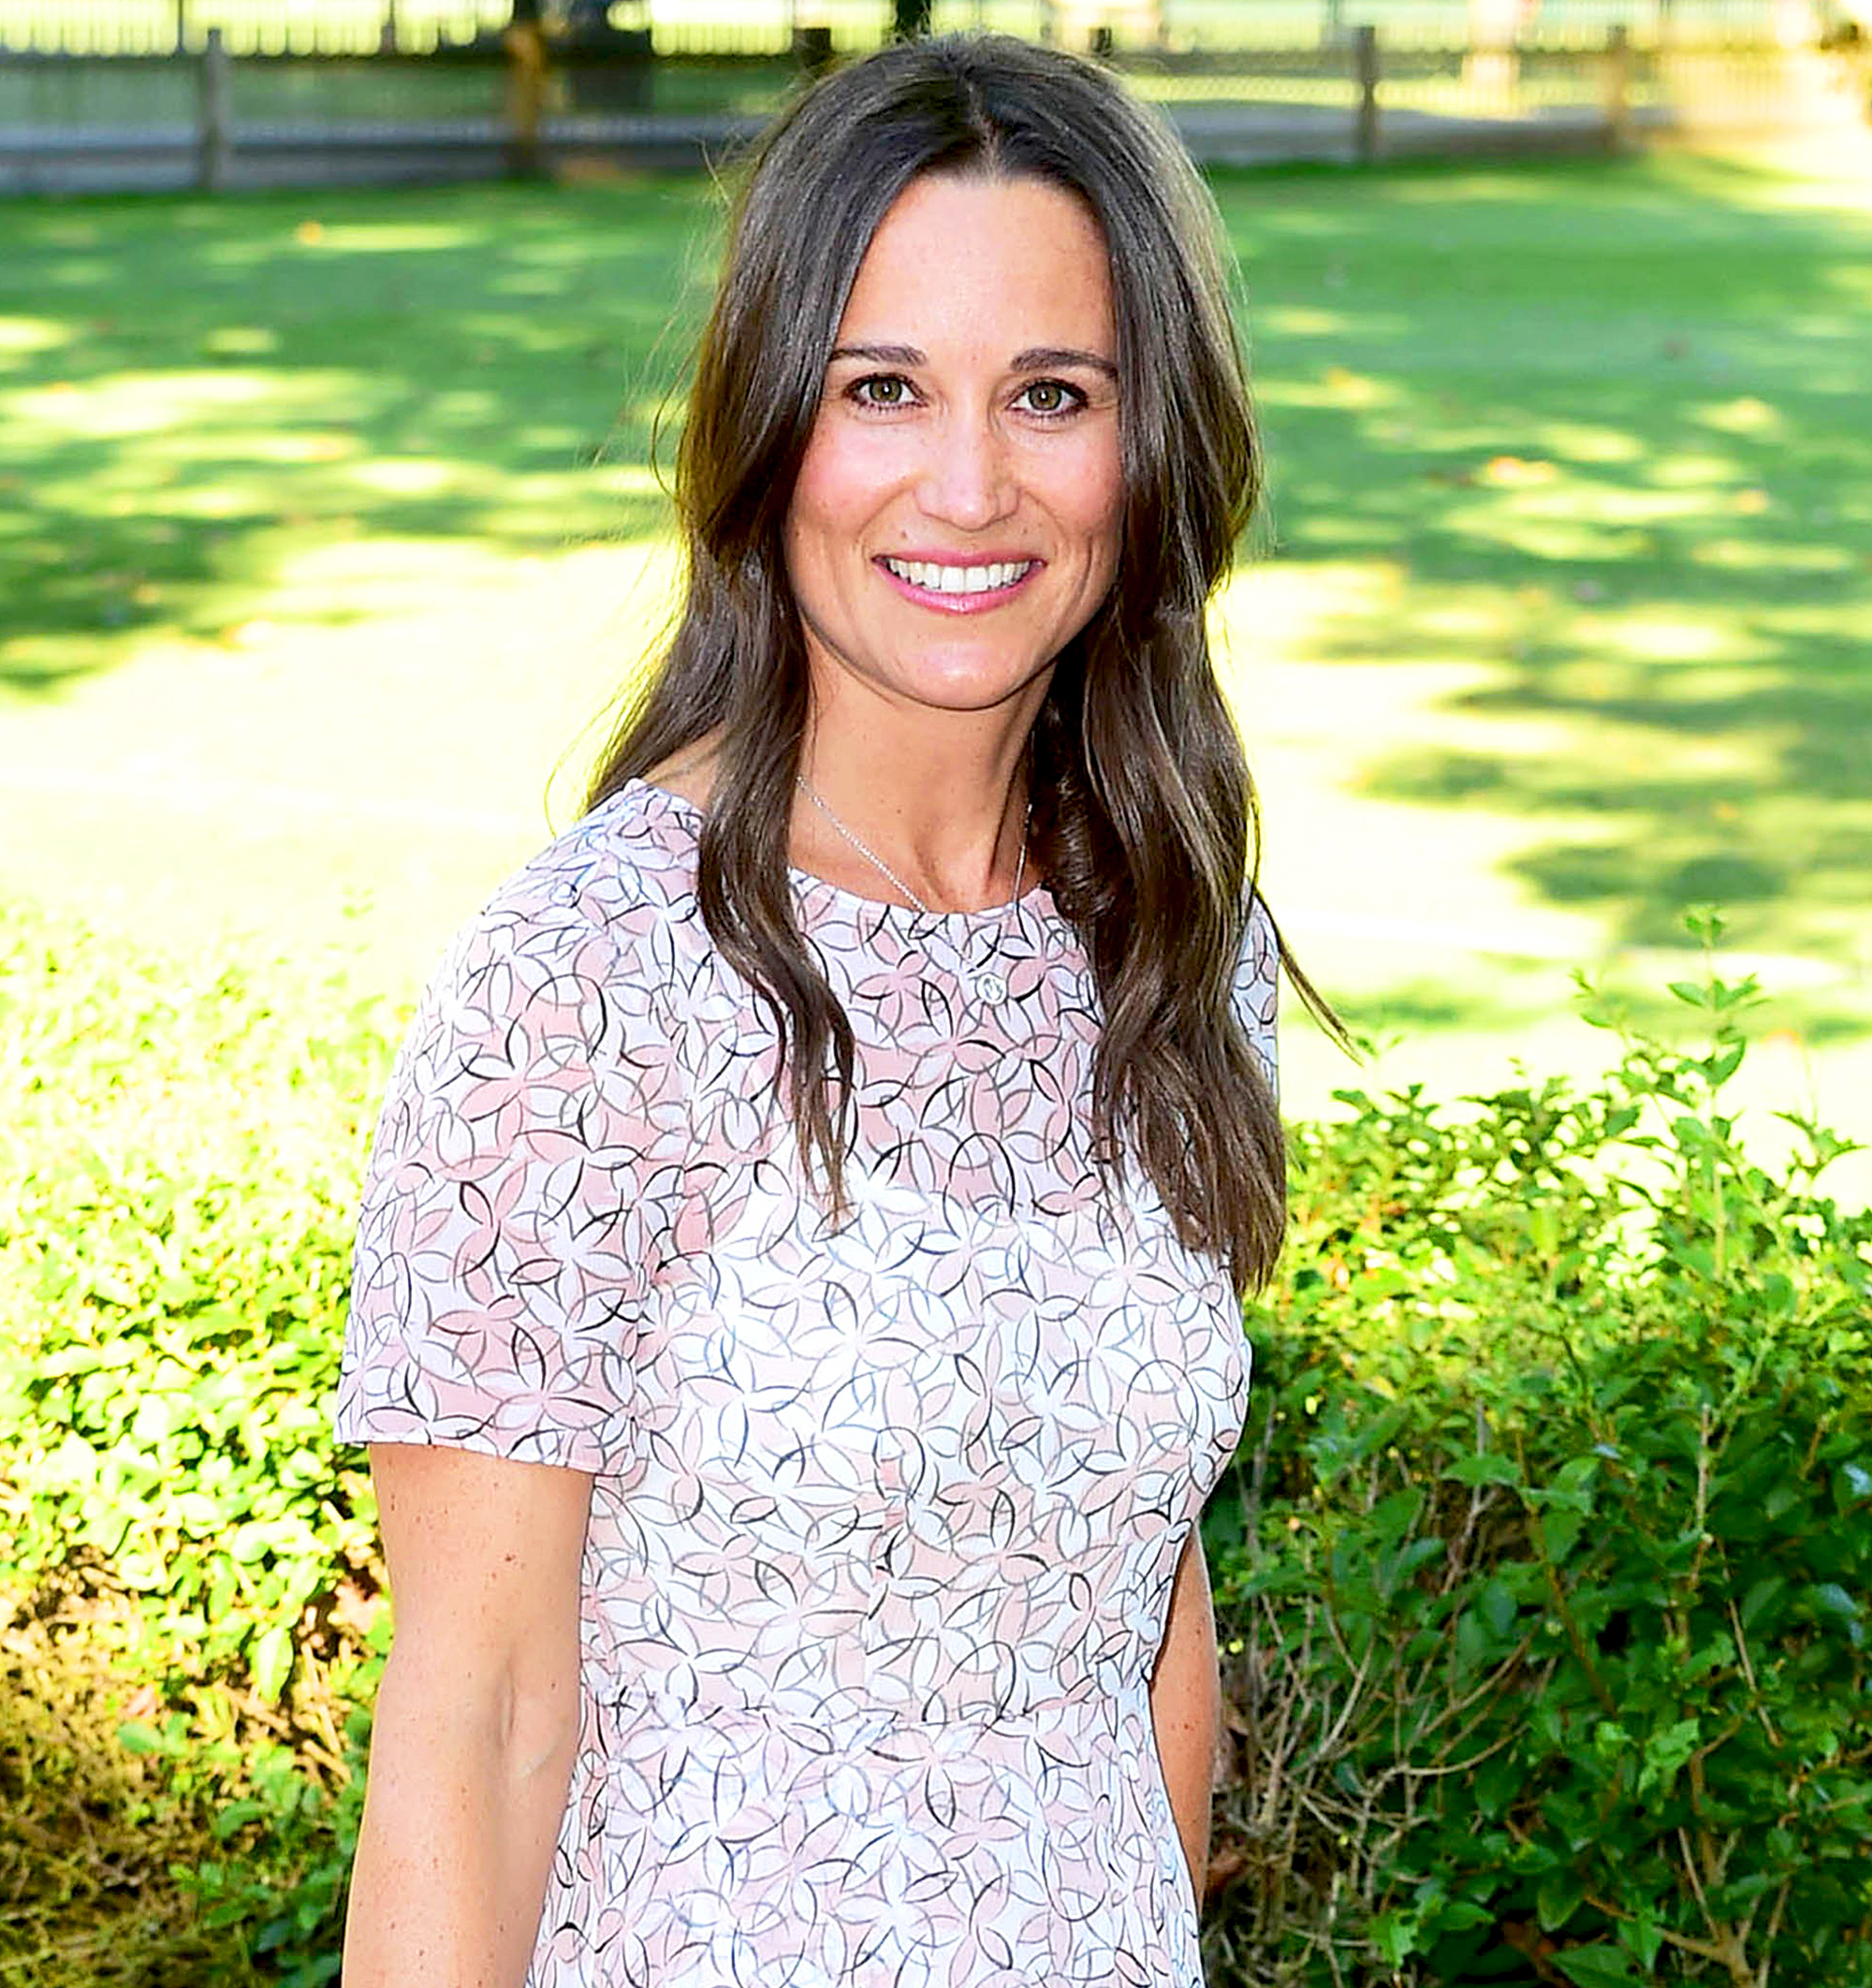 Baby news alert! Pippa Middleton is pregnant with her first child